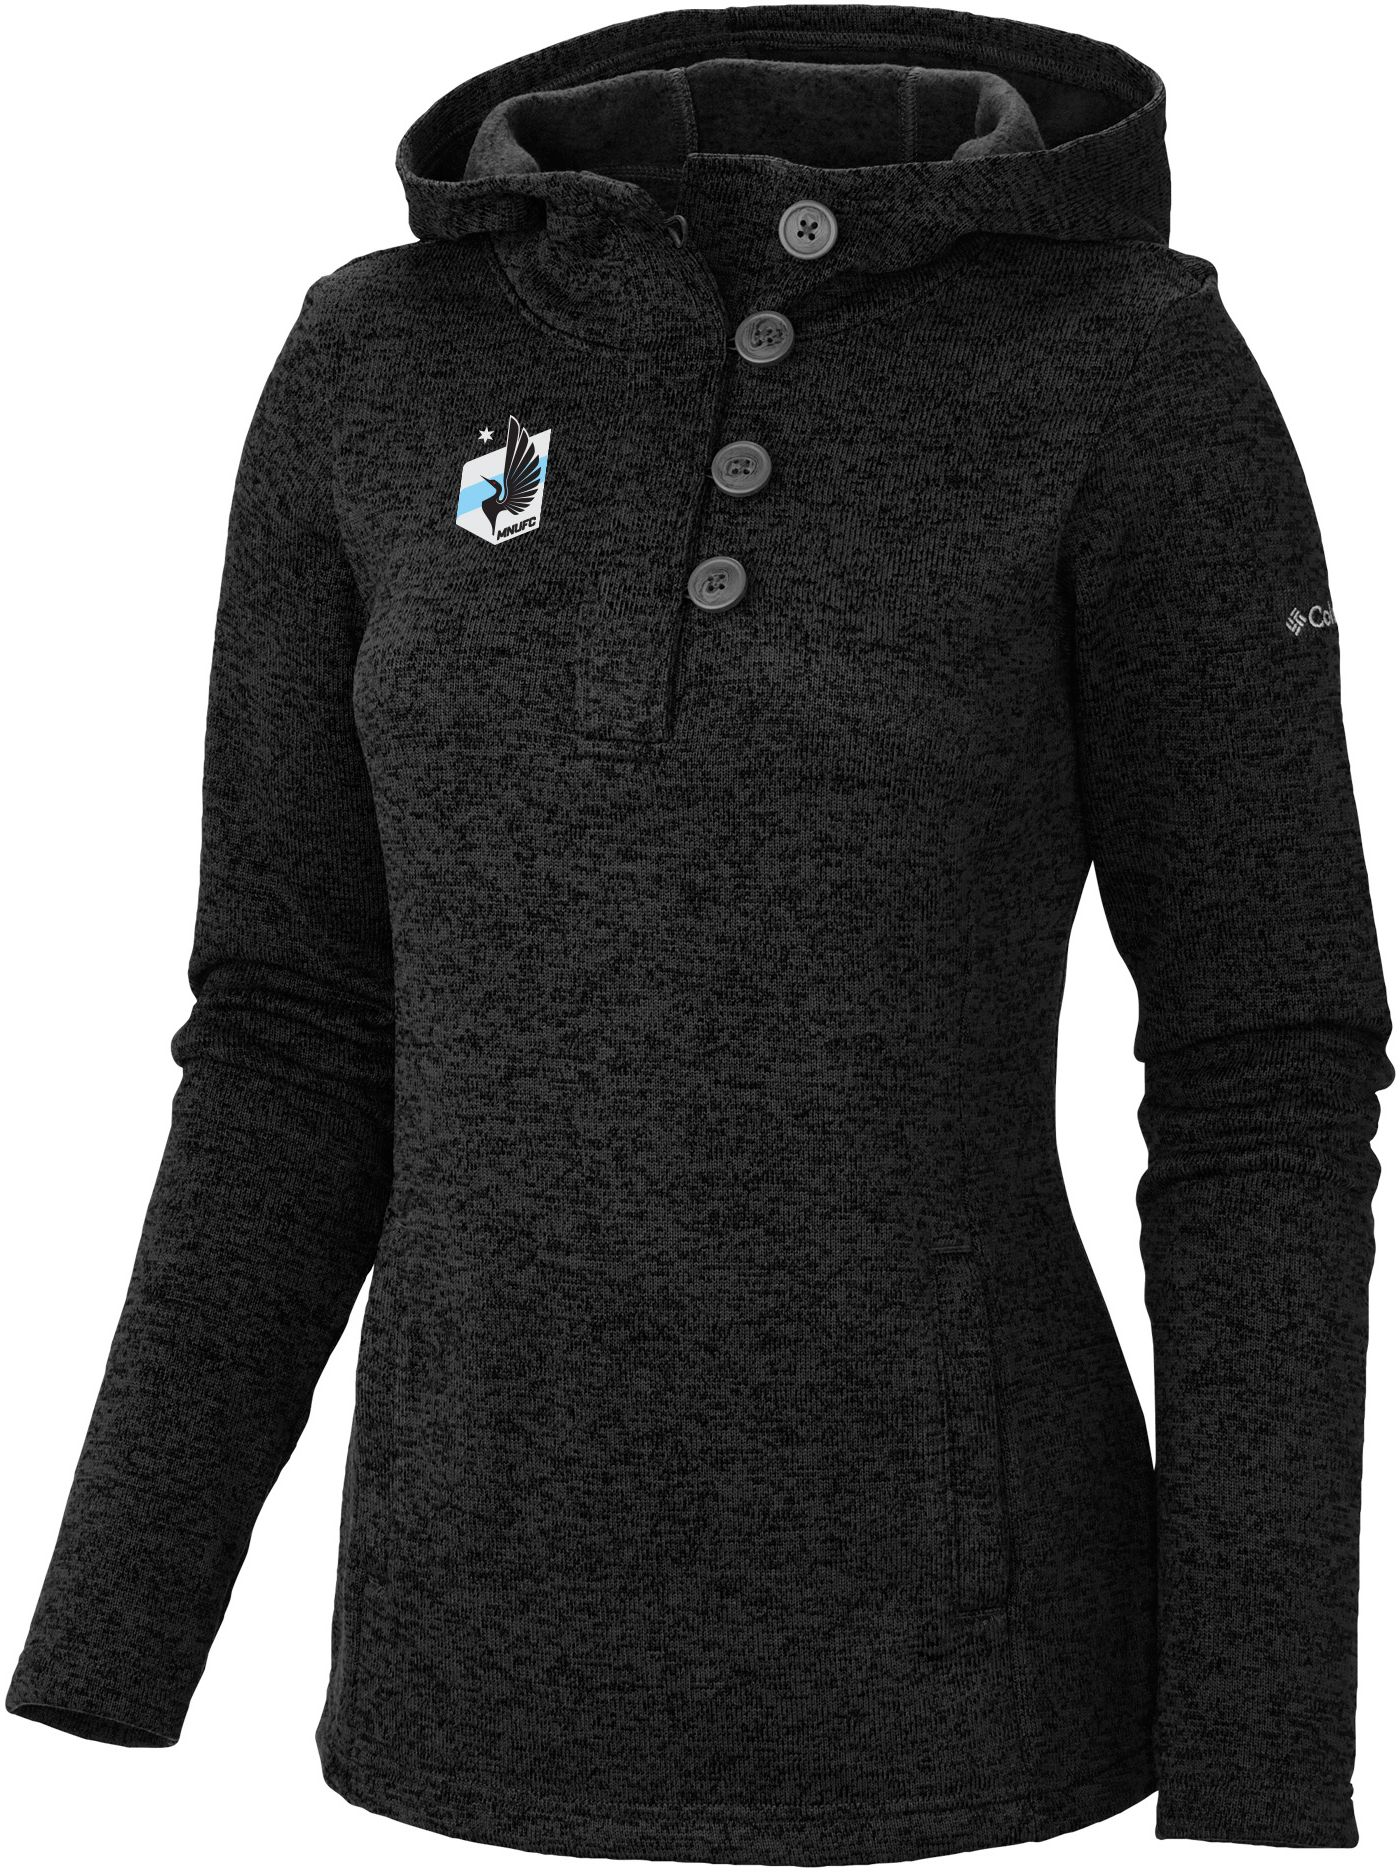 Columbia Women's Minnesota United FC Darling Days Black Heathered Pullover Sweatshirt